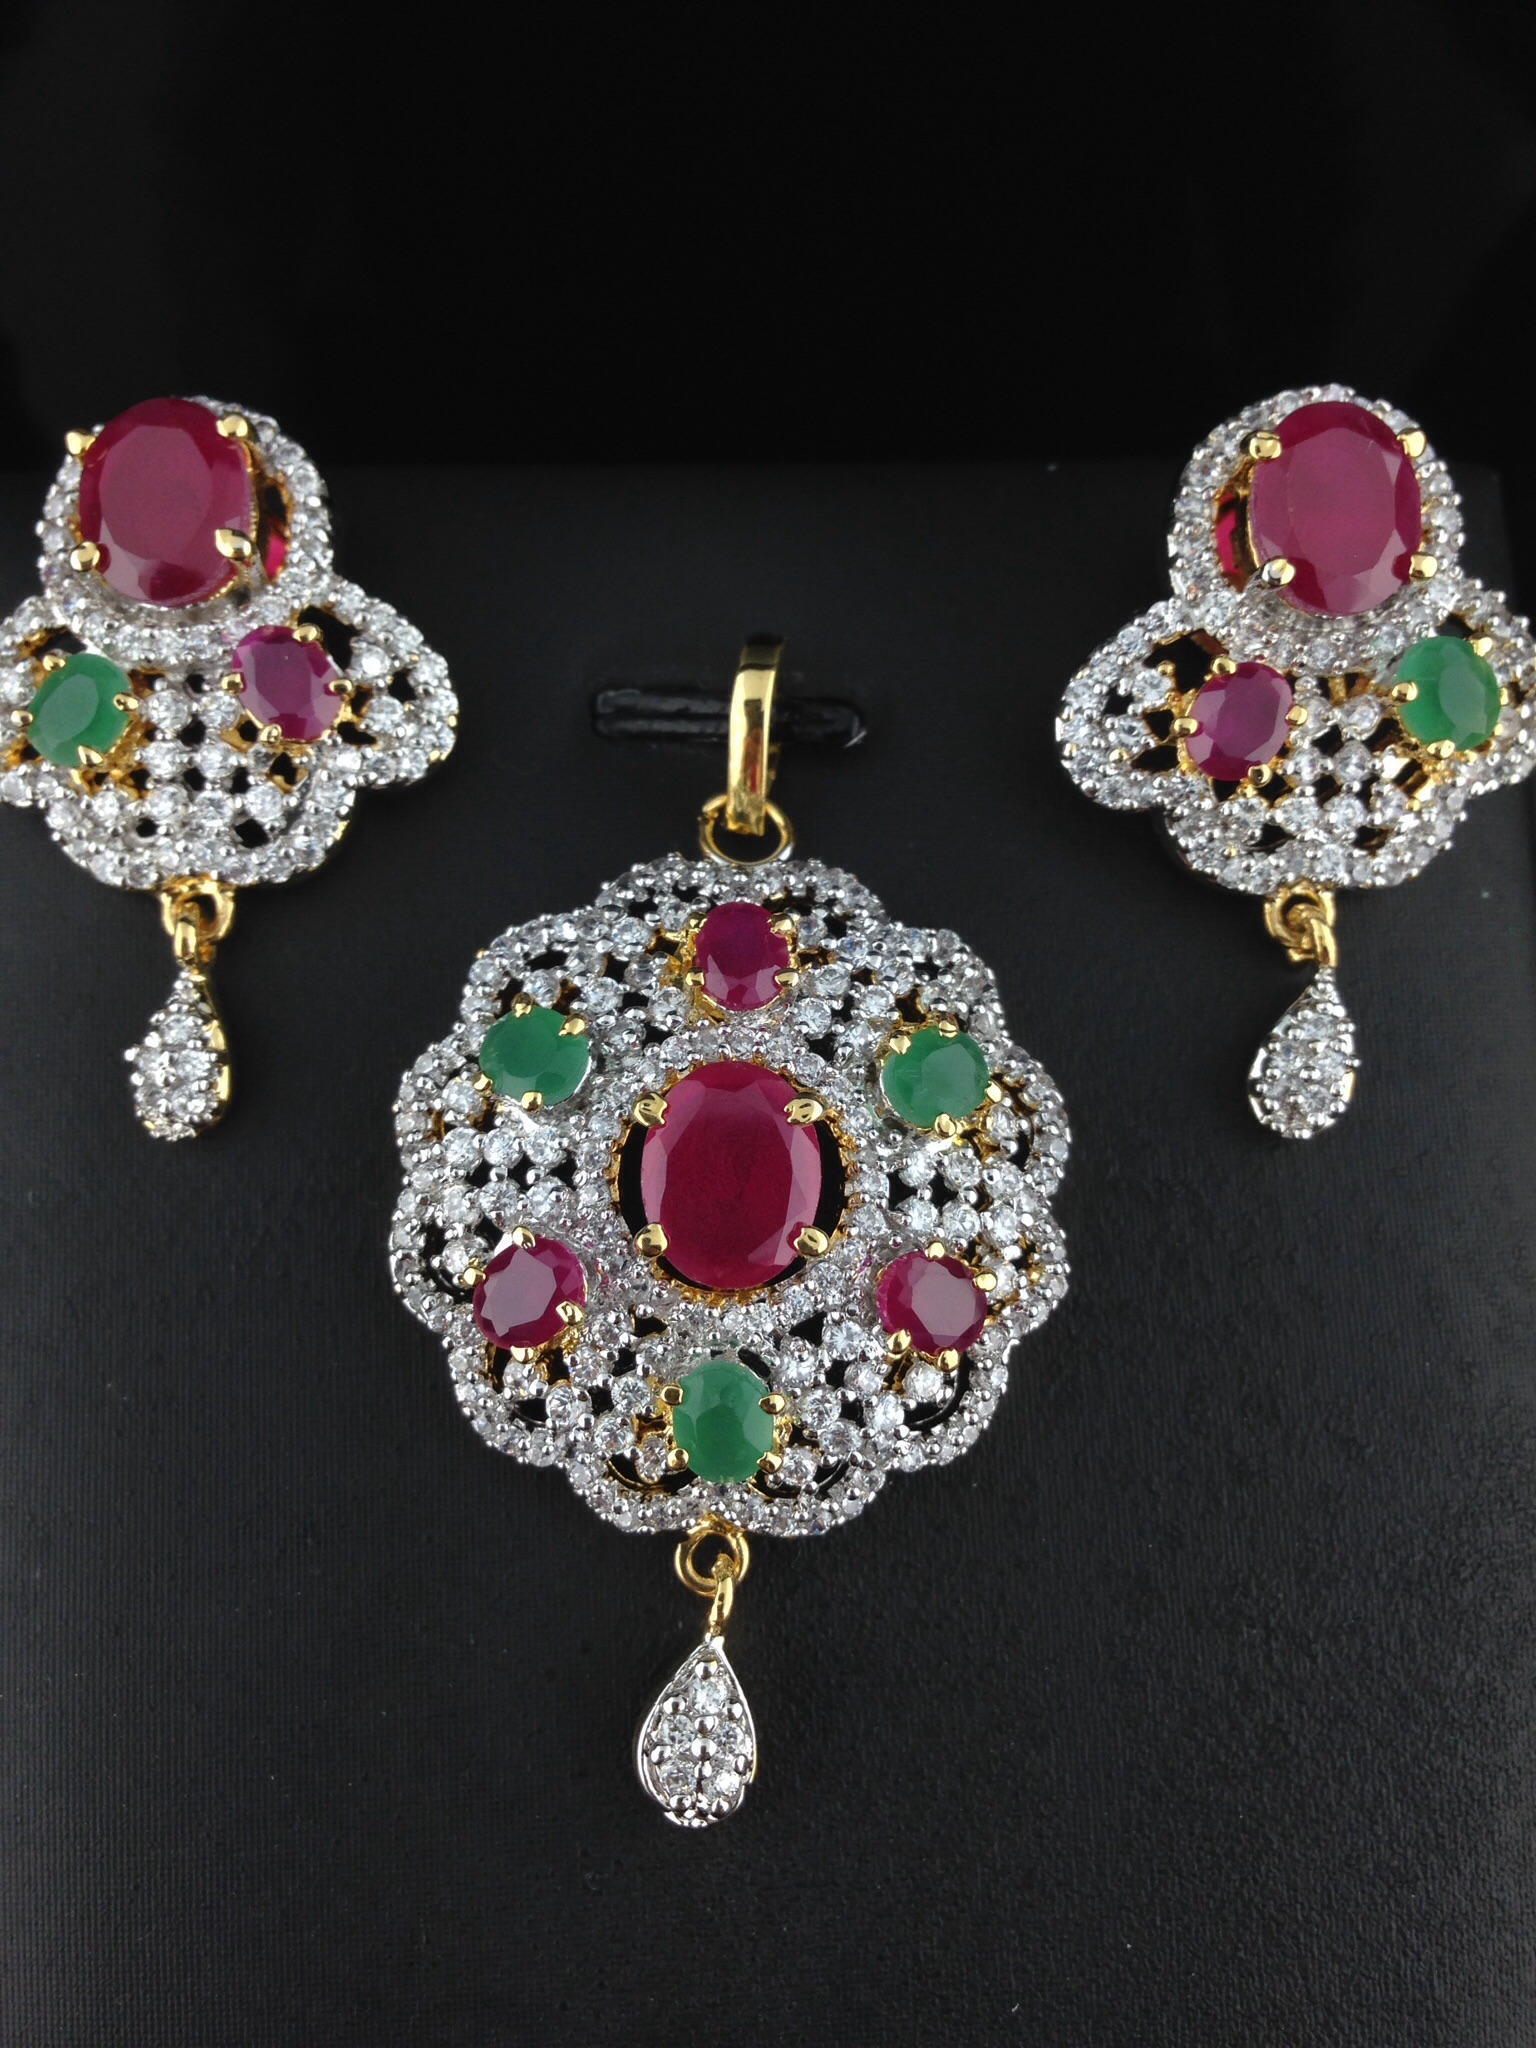 American Diamond CZ Pendant Set With Rubies and Emeralds.